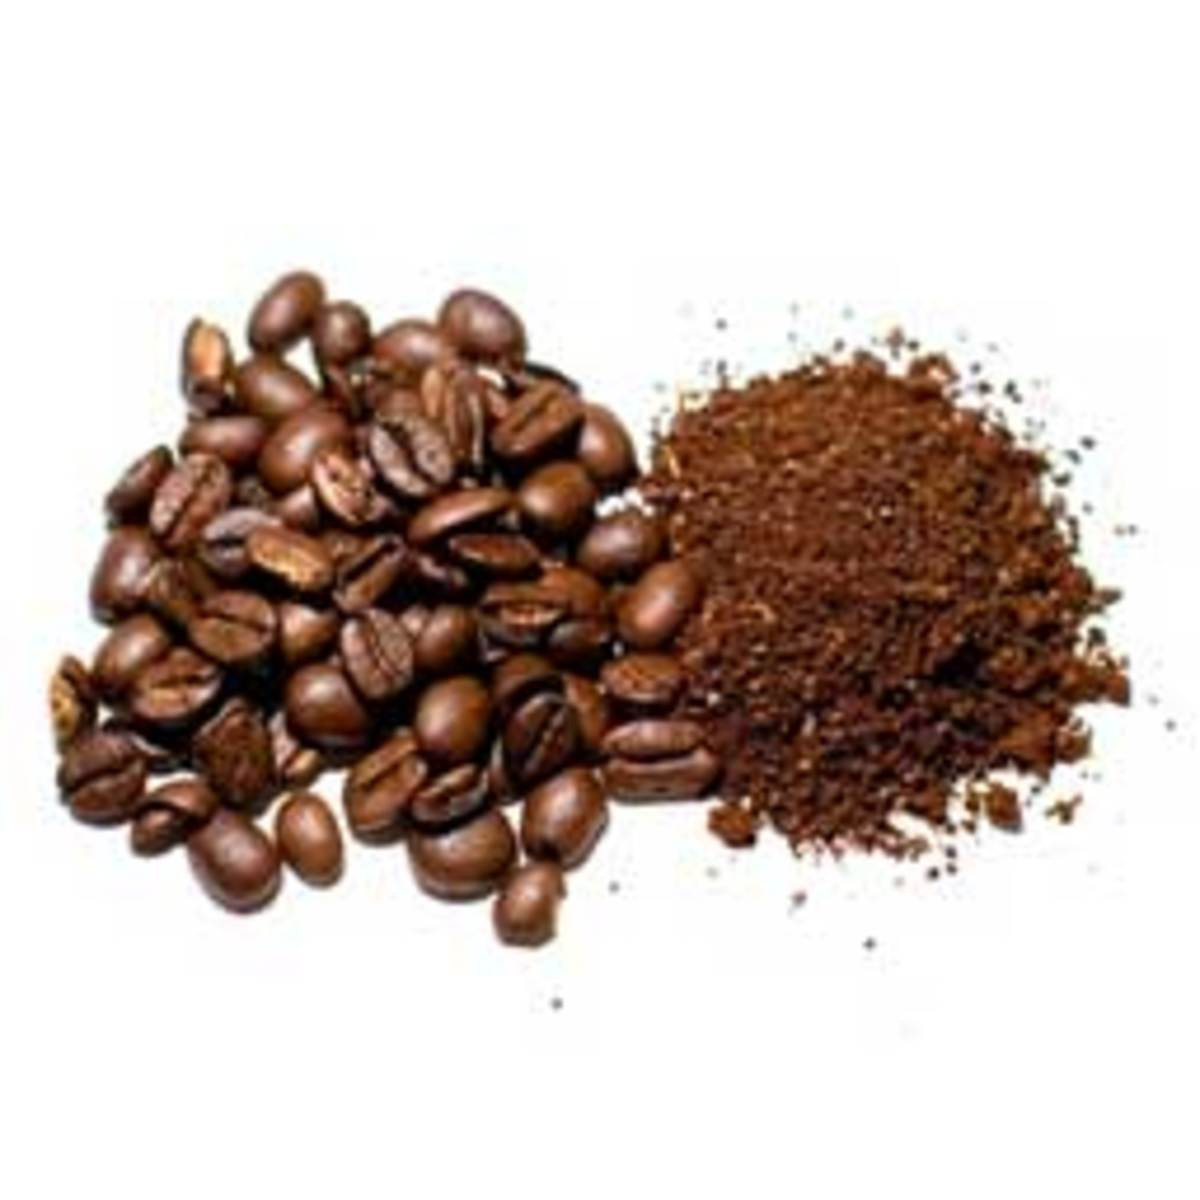 How Are Coffee and Espresso Grounds Different?